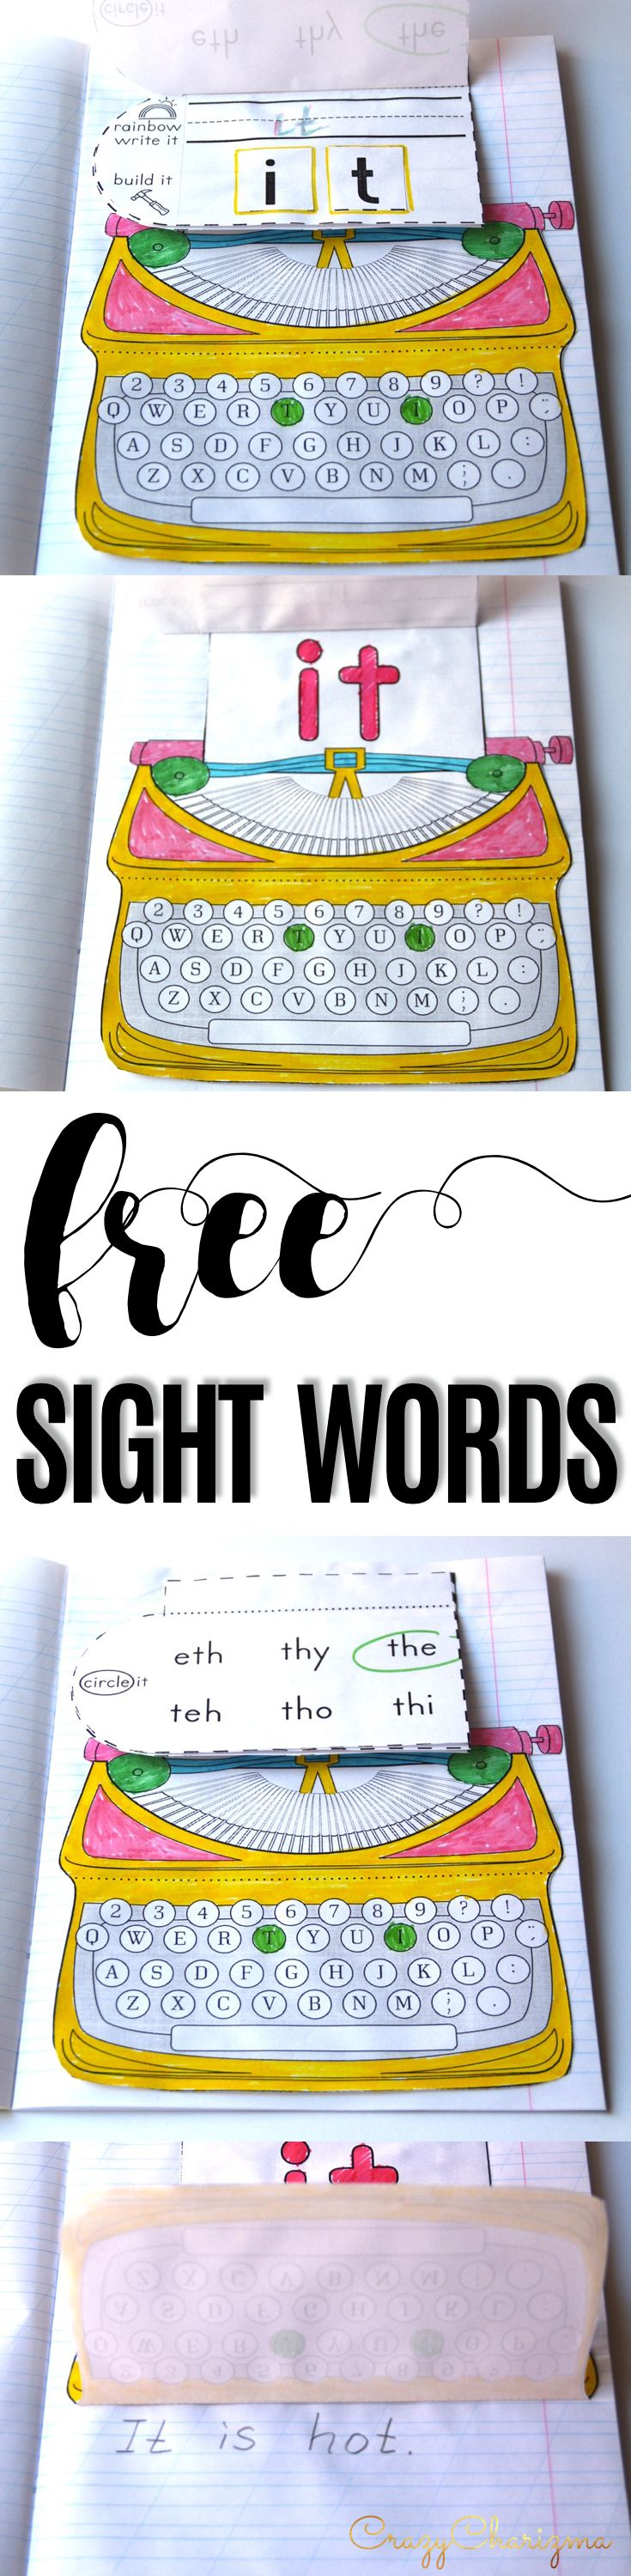 Are you looking for some fun ideas and activities for teaching sight words? The FREE packet has 11 activities and games for 3 sight words: the, and, it. These printables are great for literacy centers and independent practice in the classroom and at home. Great for advanced pre-k, kindergarten, and first grade. These are the absolute best hands-on sight word activities! Learning sight words through play has never been more fun! Click on the picture to download for FREE!